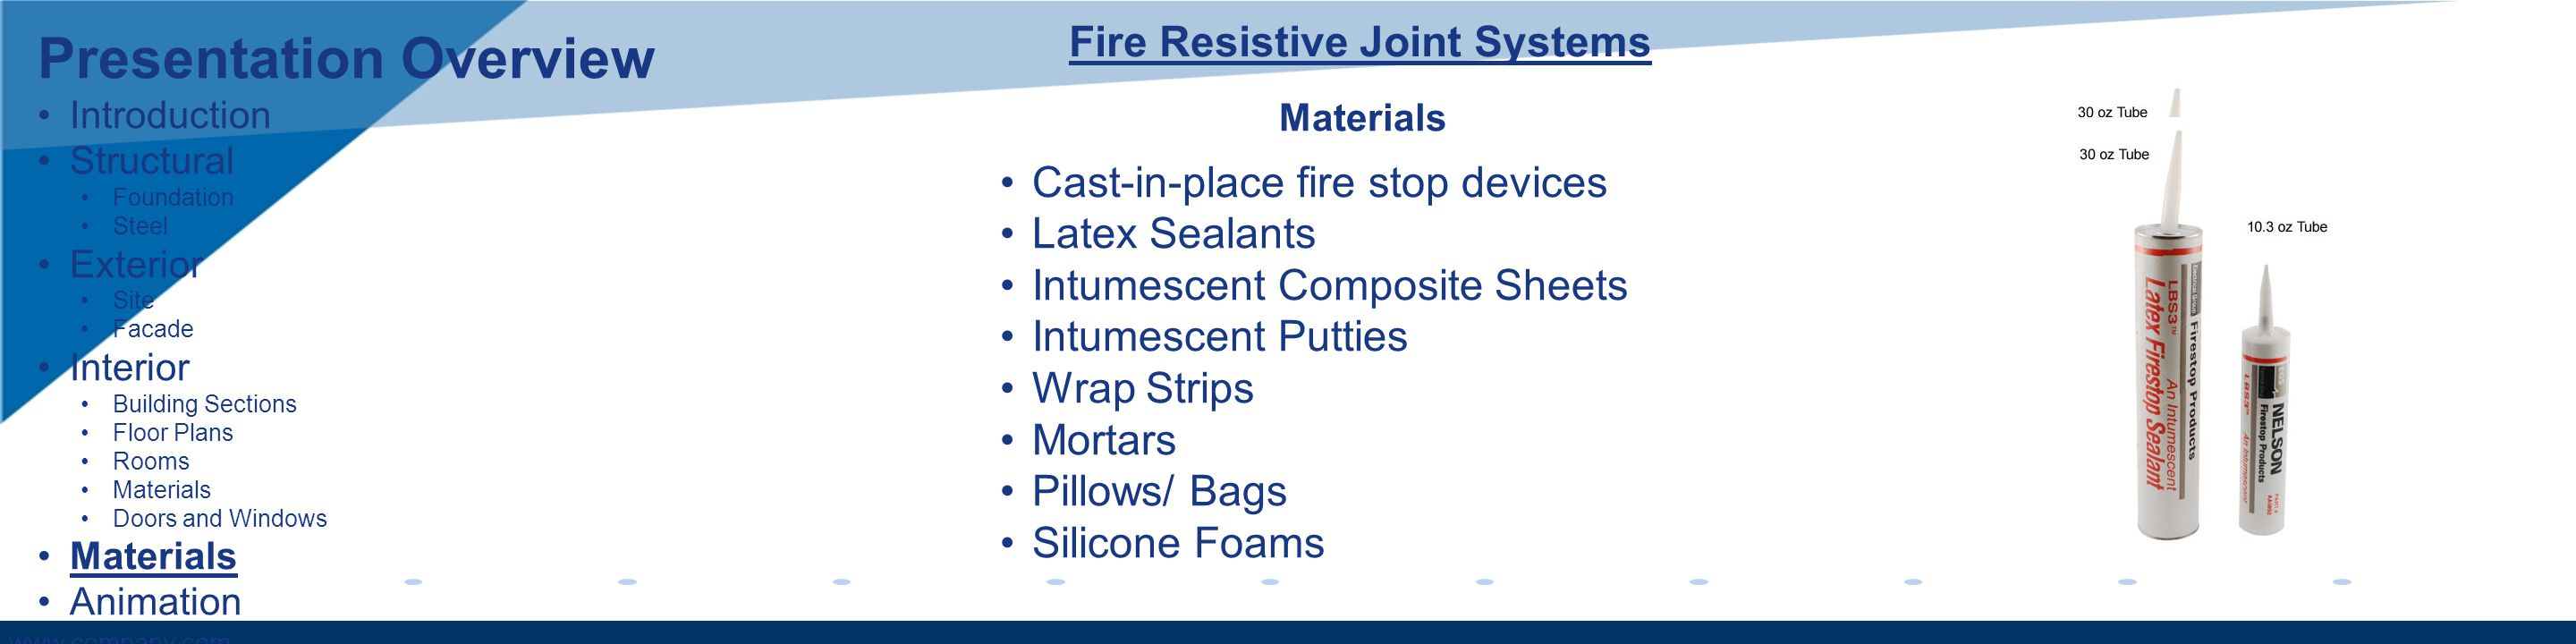 www.company.com Materials Cast-in-place fire stop devices Latex Sealants Intumescent Composite Sheets Intumescent Putties Wrap Strips Mortars Pillows/